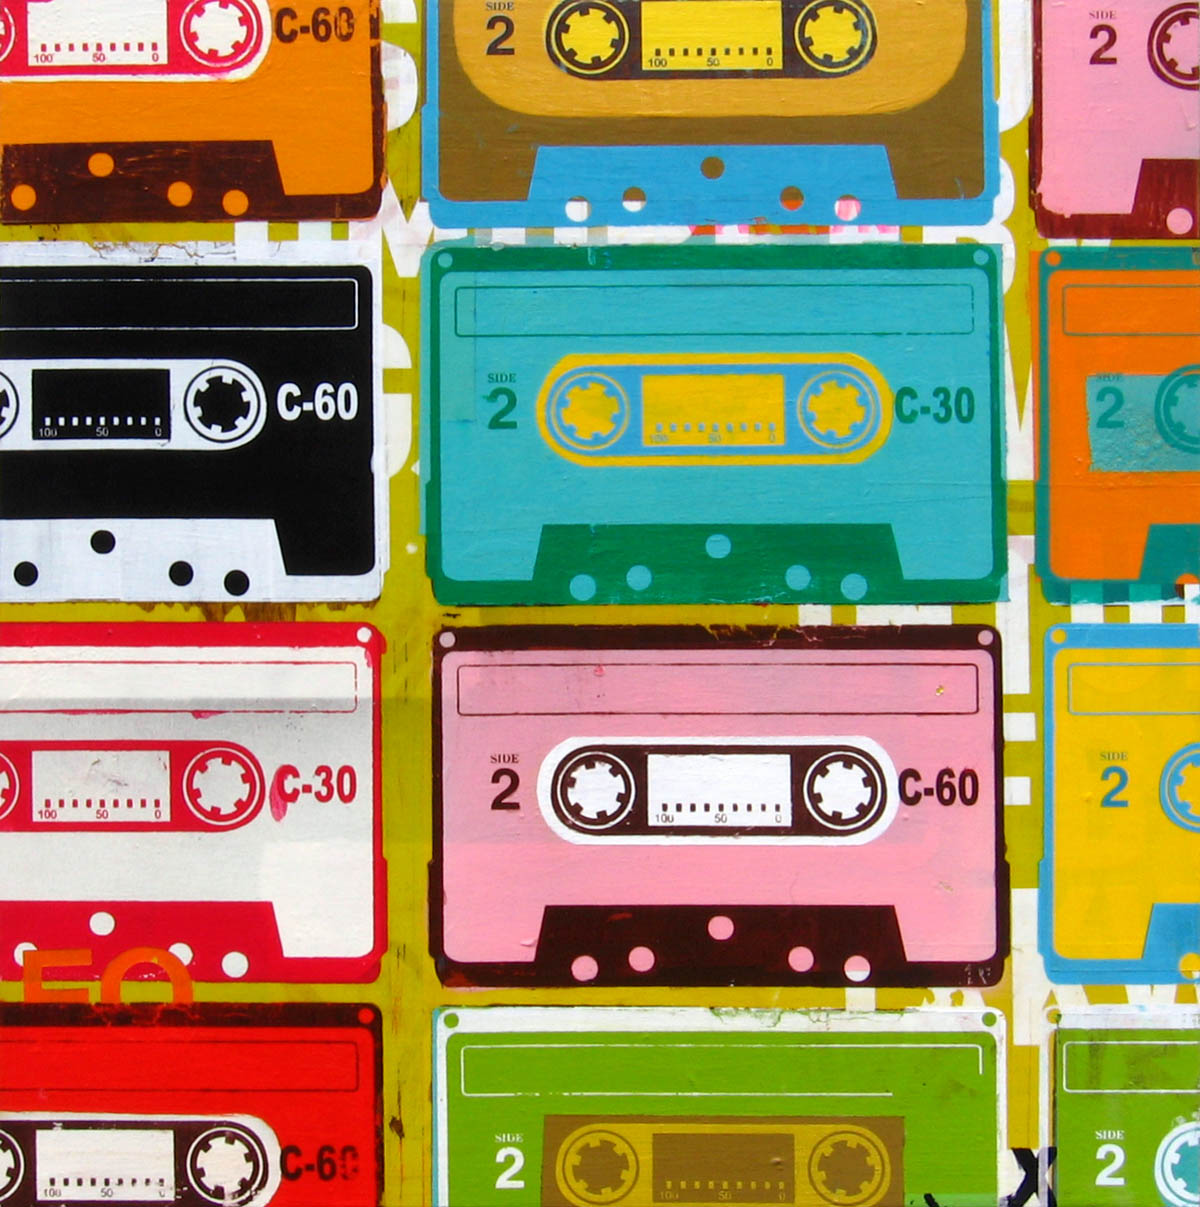 Retro cassettes artwork by Johnny Taylor